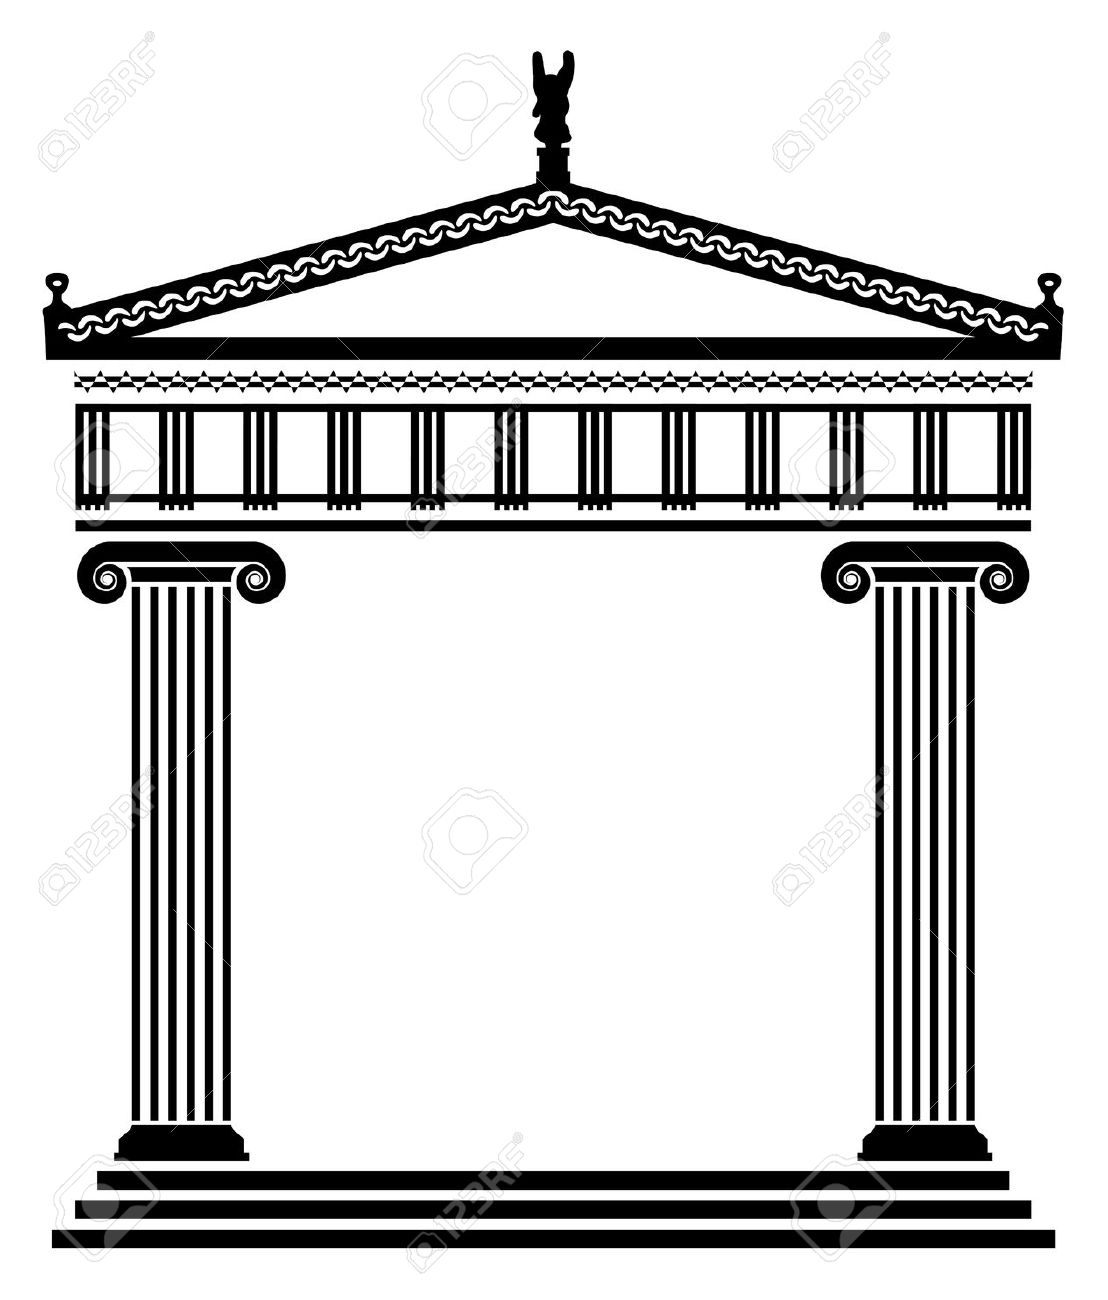 Ancient Rome Architecture Clipart.